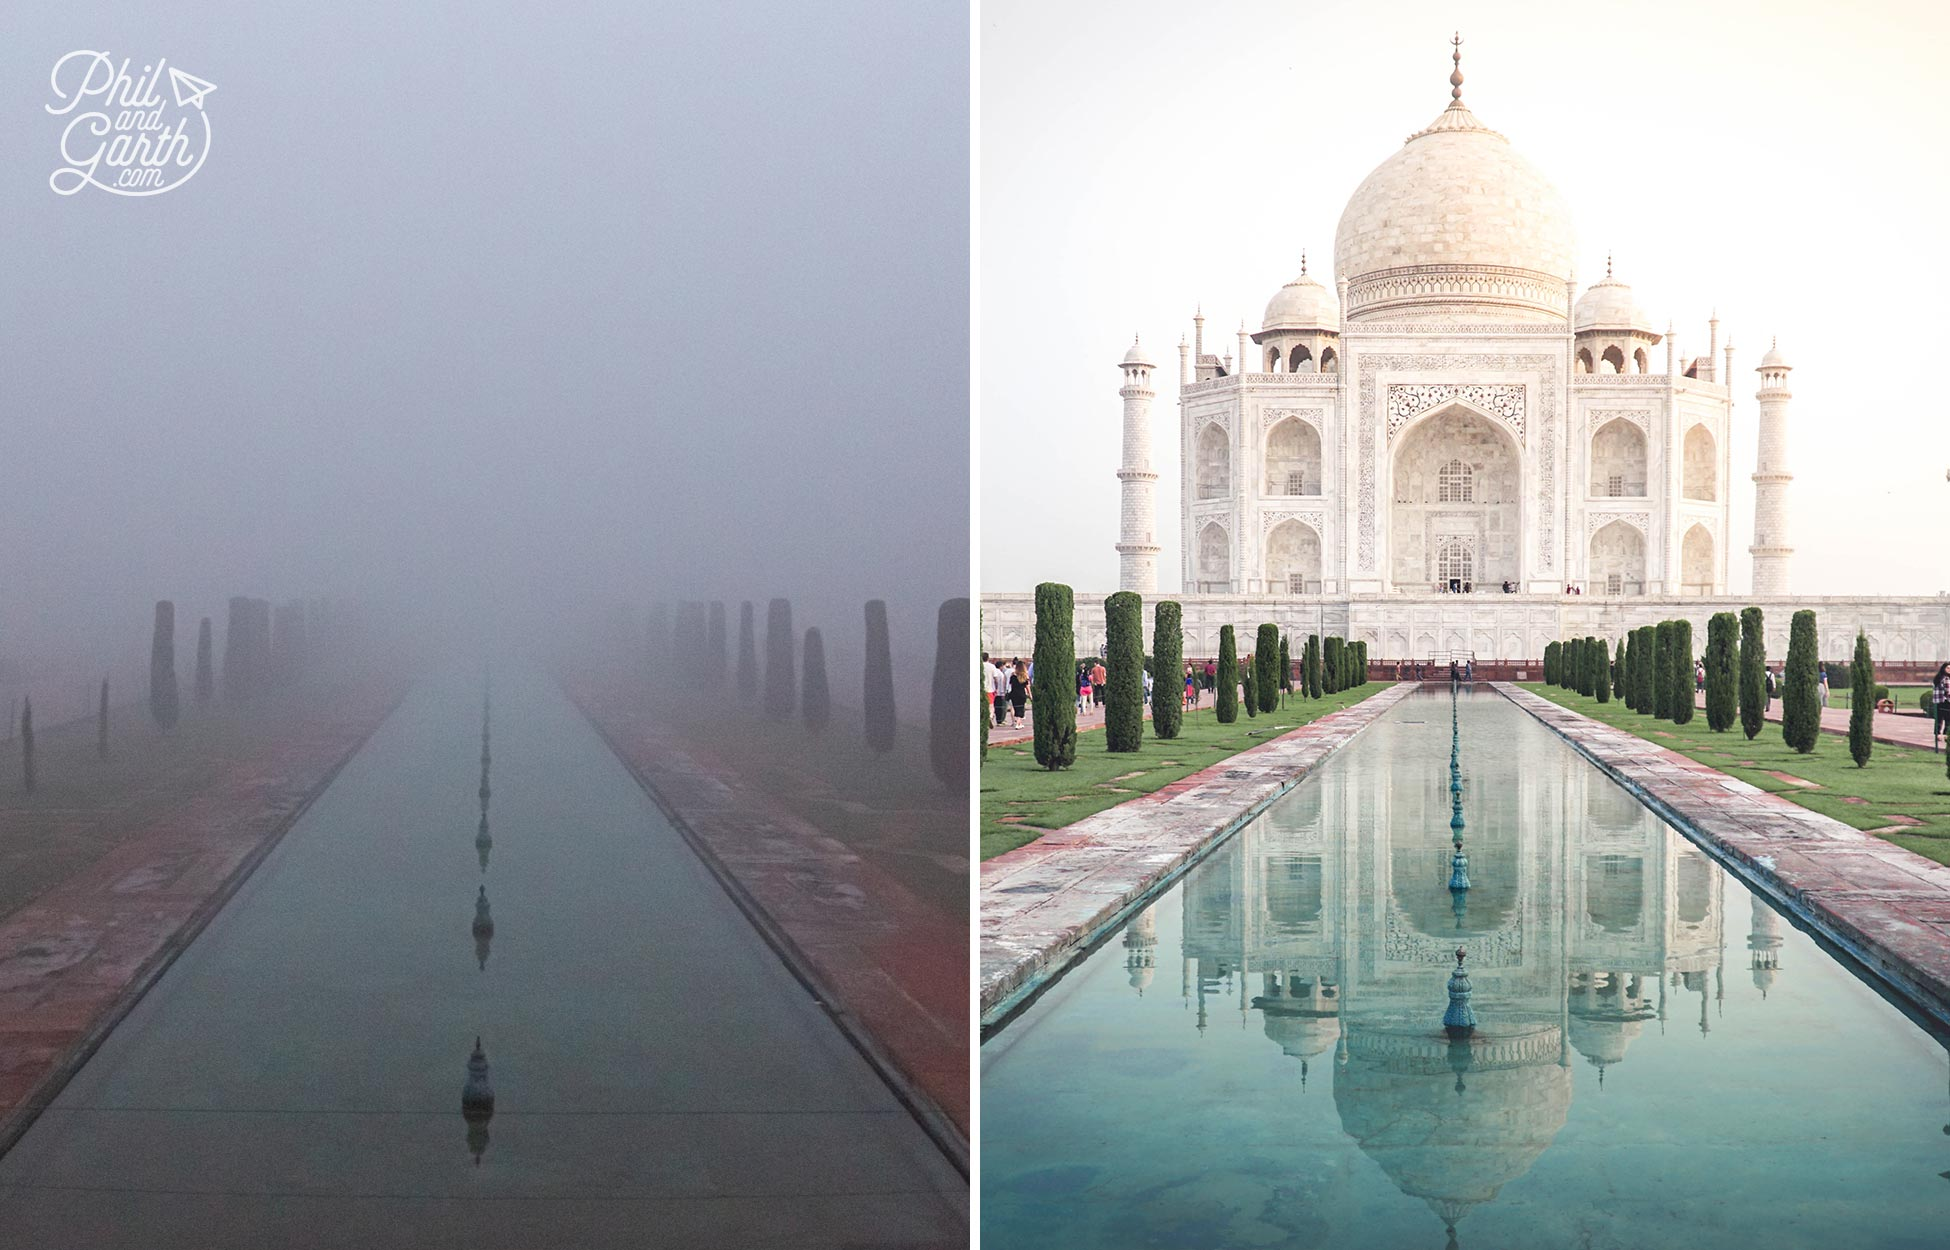 Our view of the Taj Mahal from the North gate ... and what we should have seen!